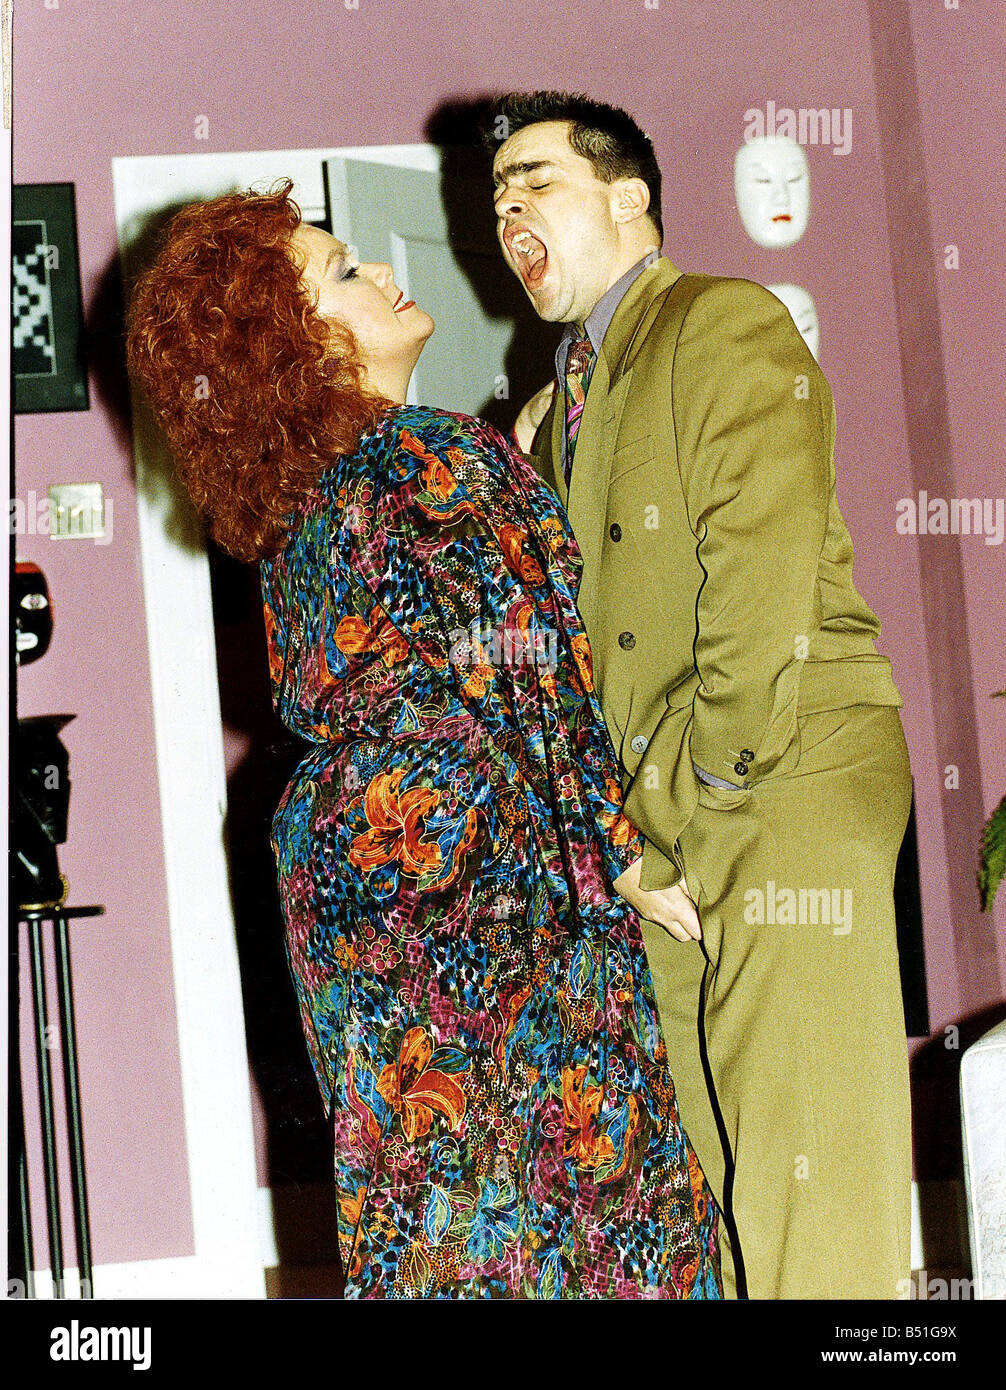 Dawn French with Kevin Allen in play by Ben Elton called Silly CowStock Photo